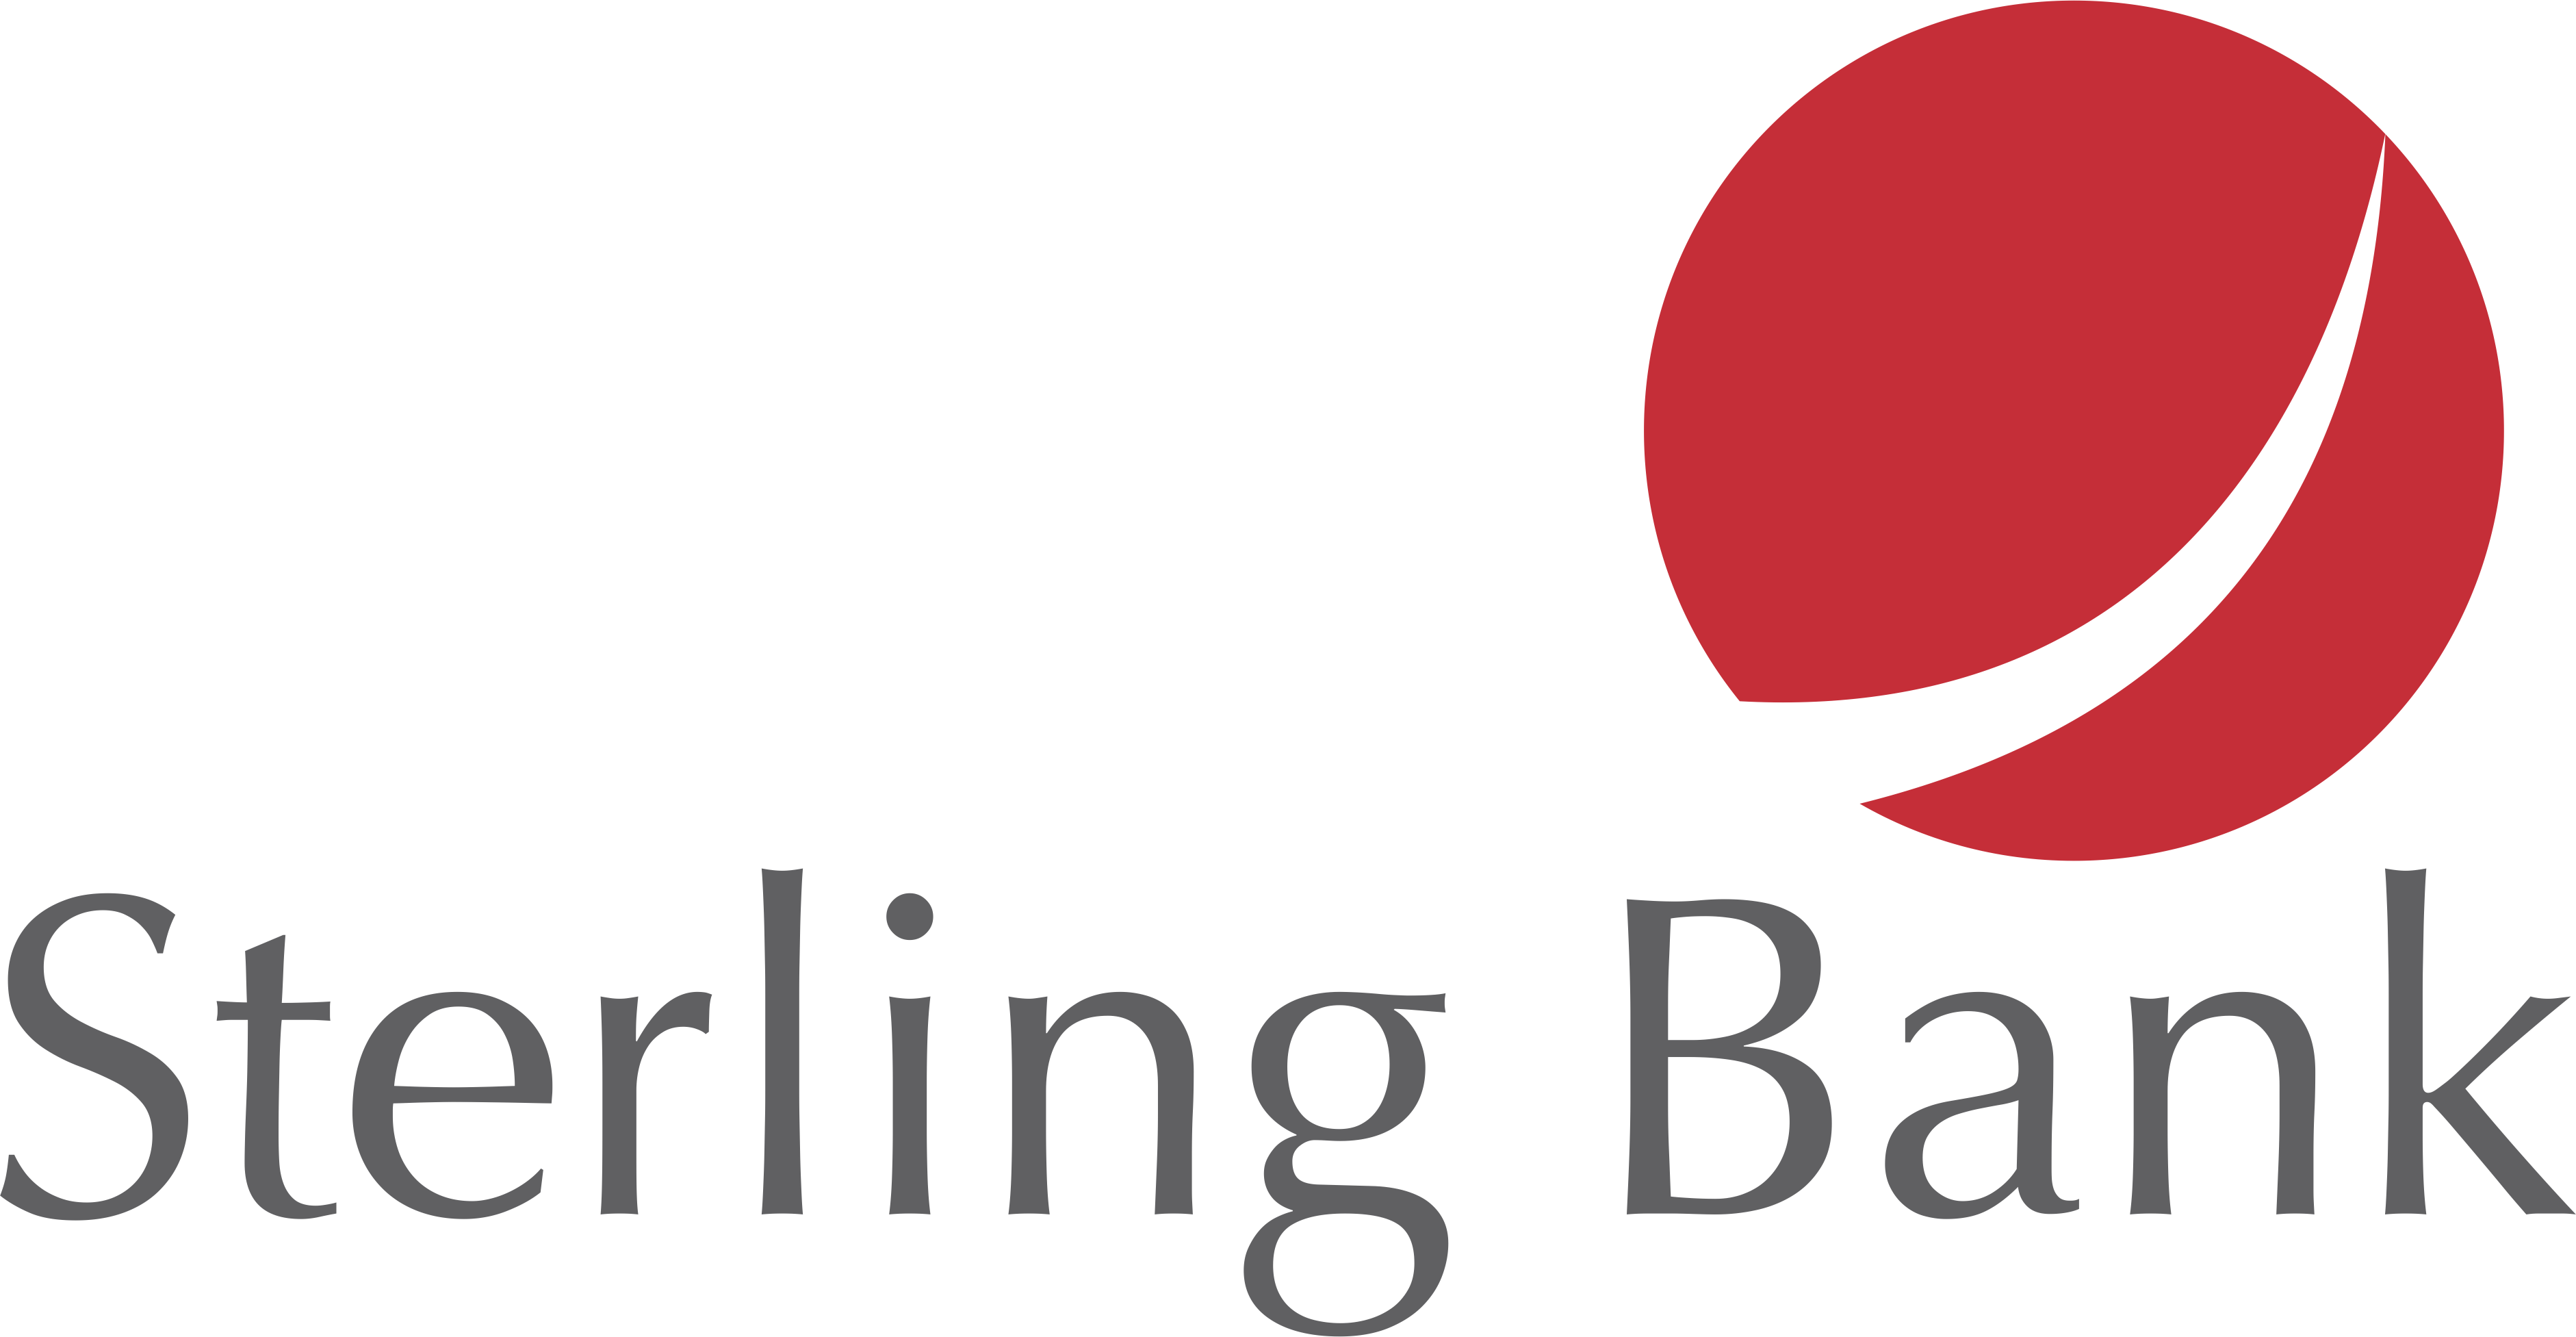 Sterling Bank Branches in Abuja: Full List & Contact Details